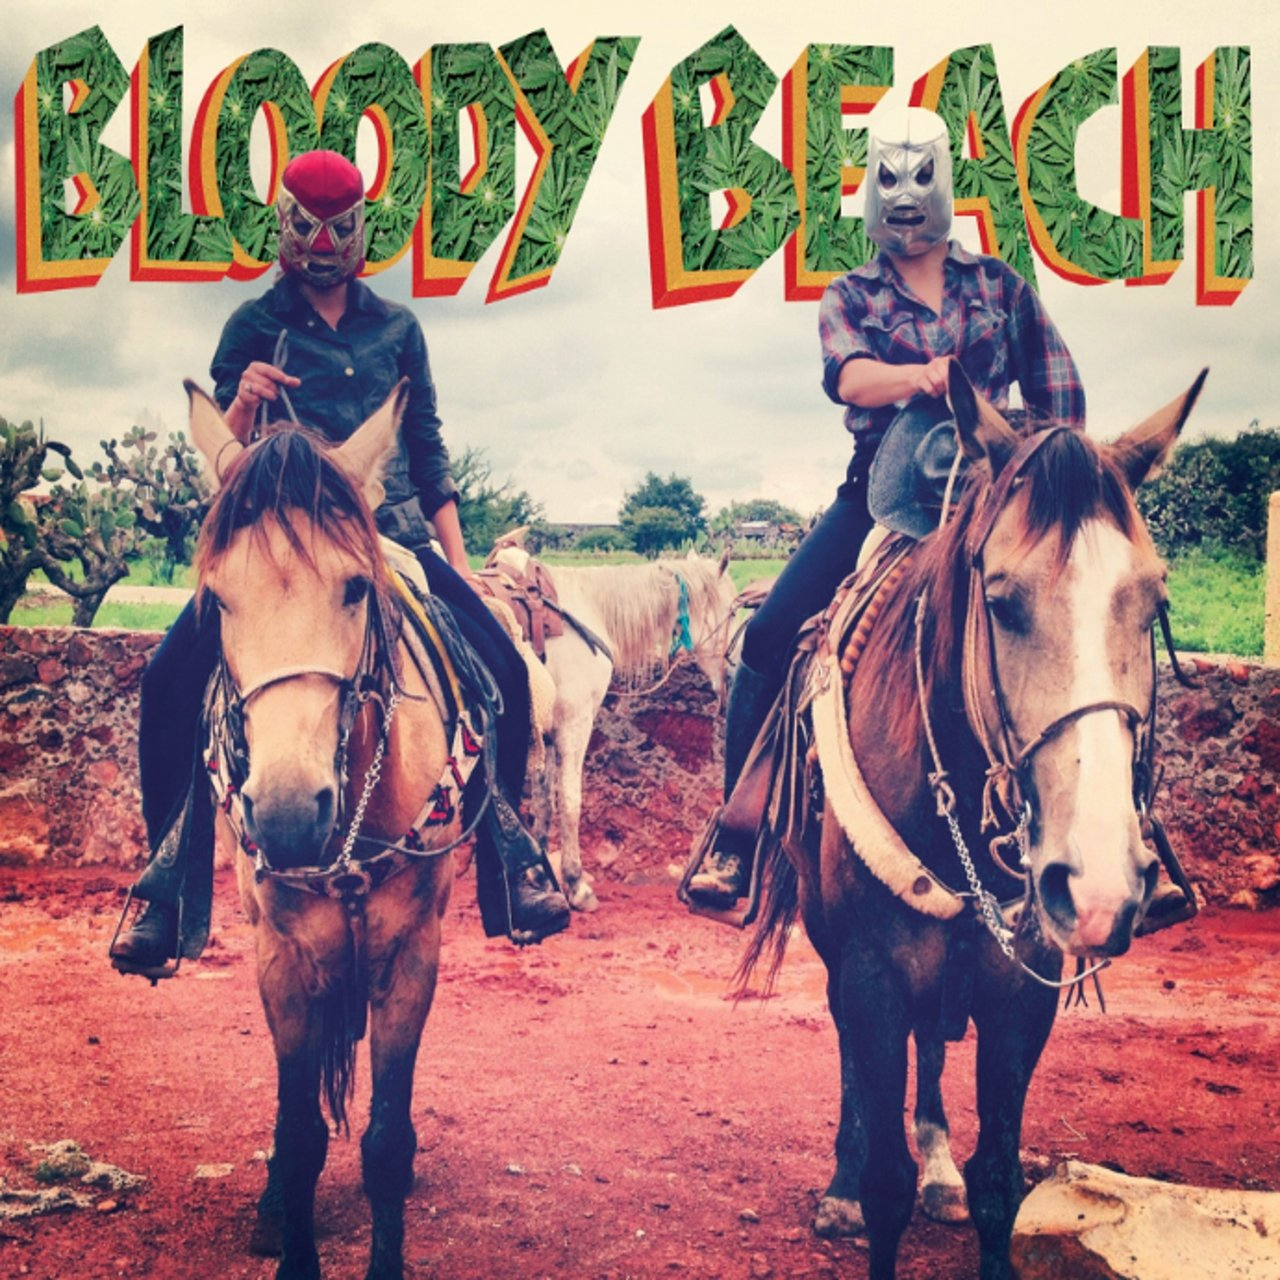 Bloody Beach Pirate Radio Presents: